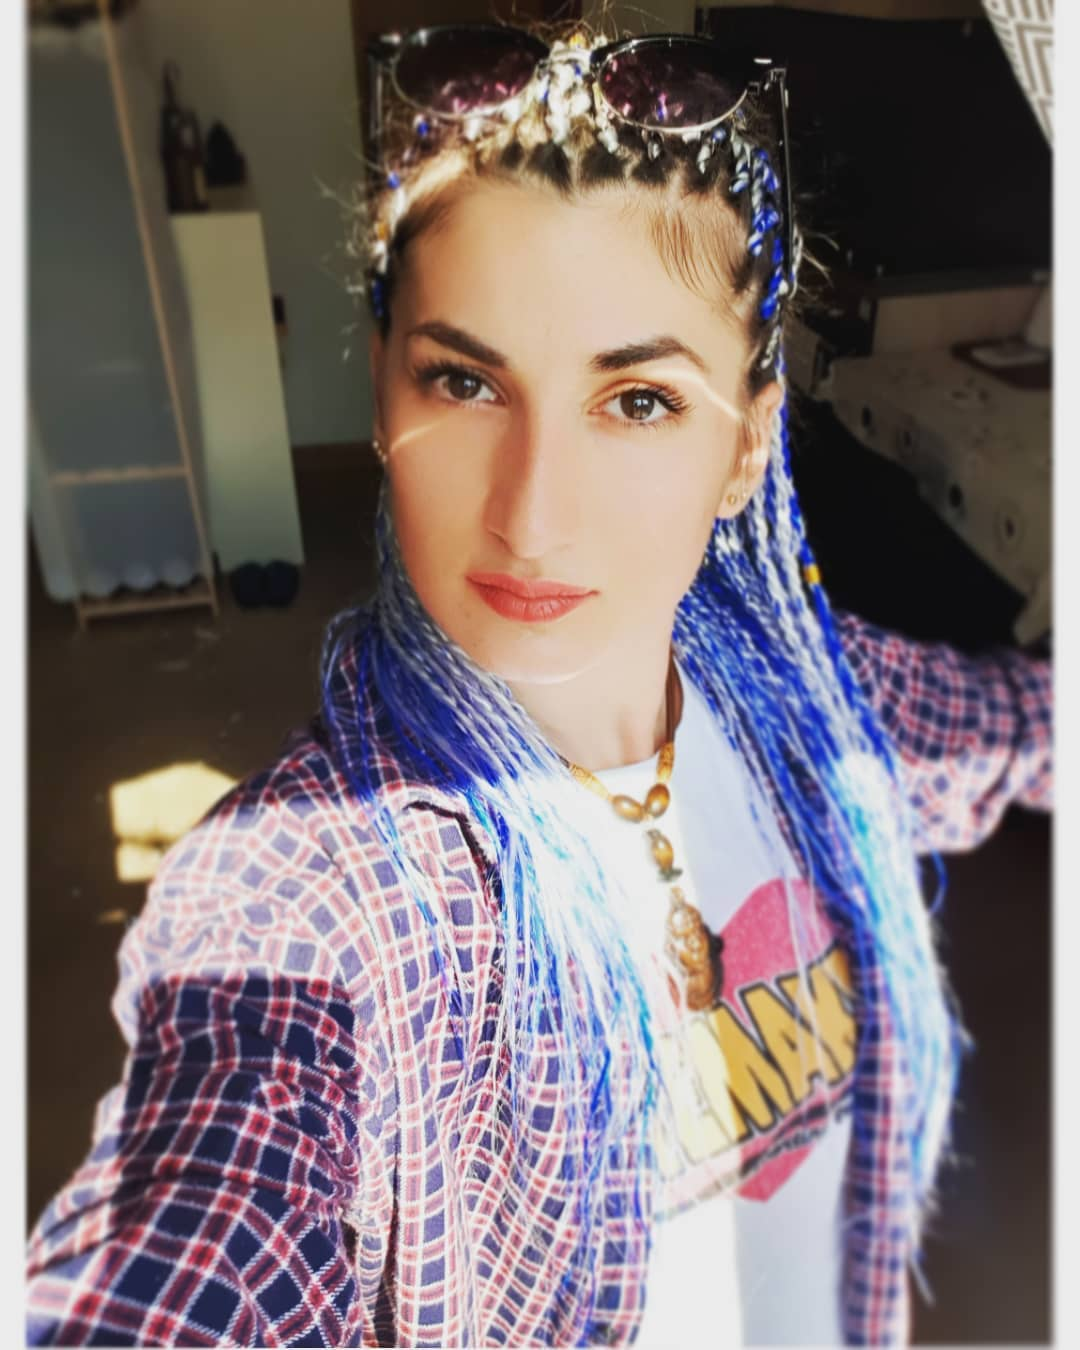 Girl wearing flannel shirt and senegalese twists with blue color